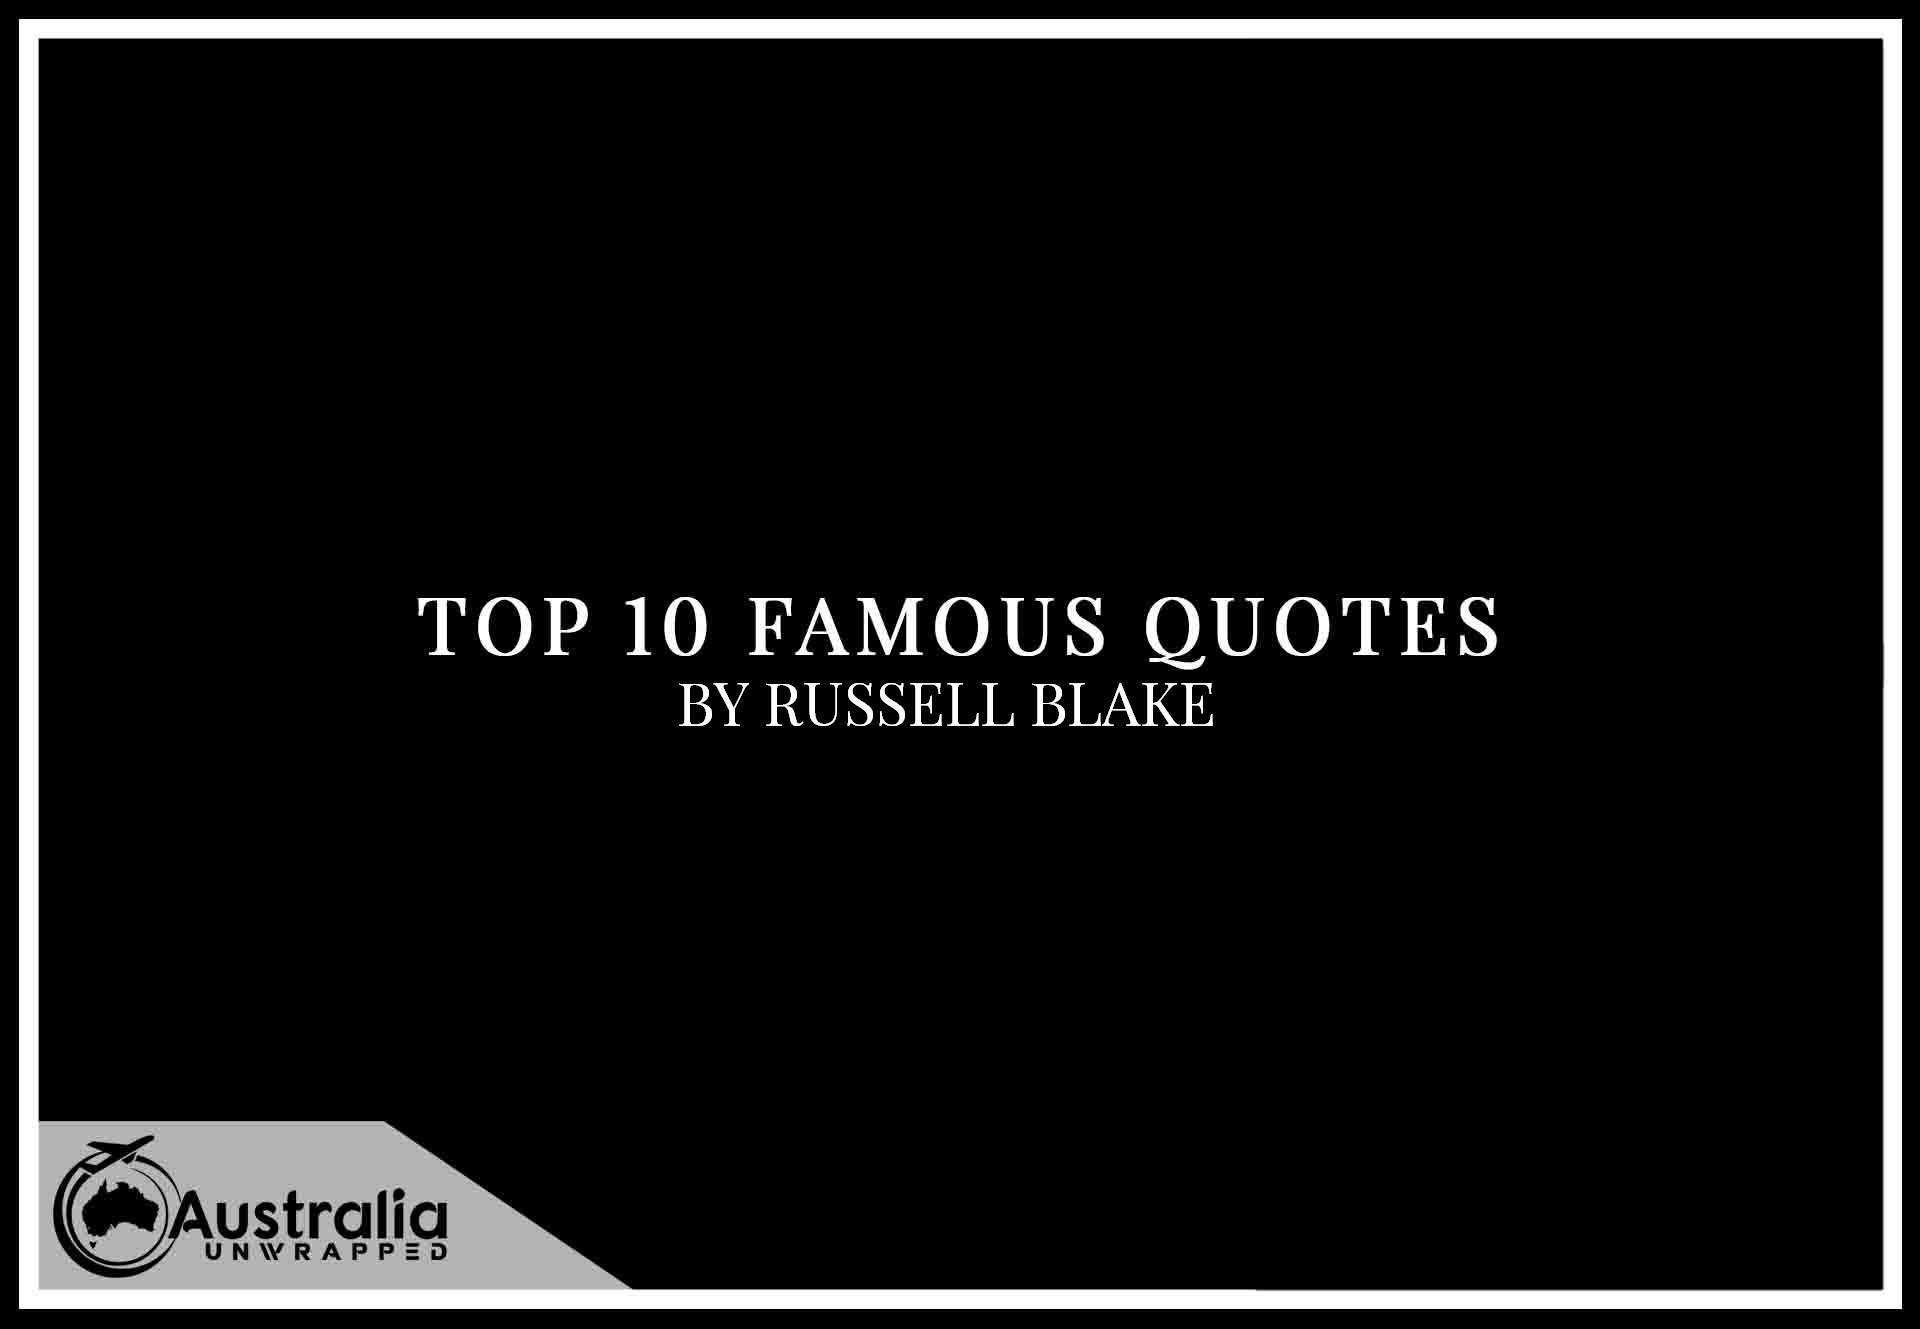 Top 10 Famous Quotes by Author Russell Blake